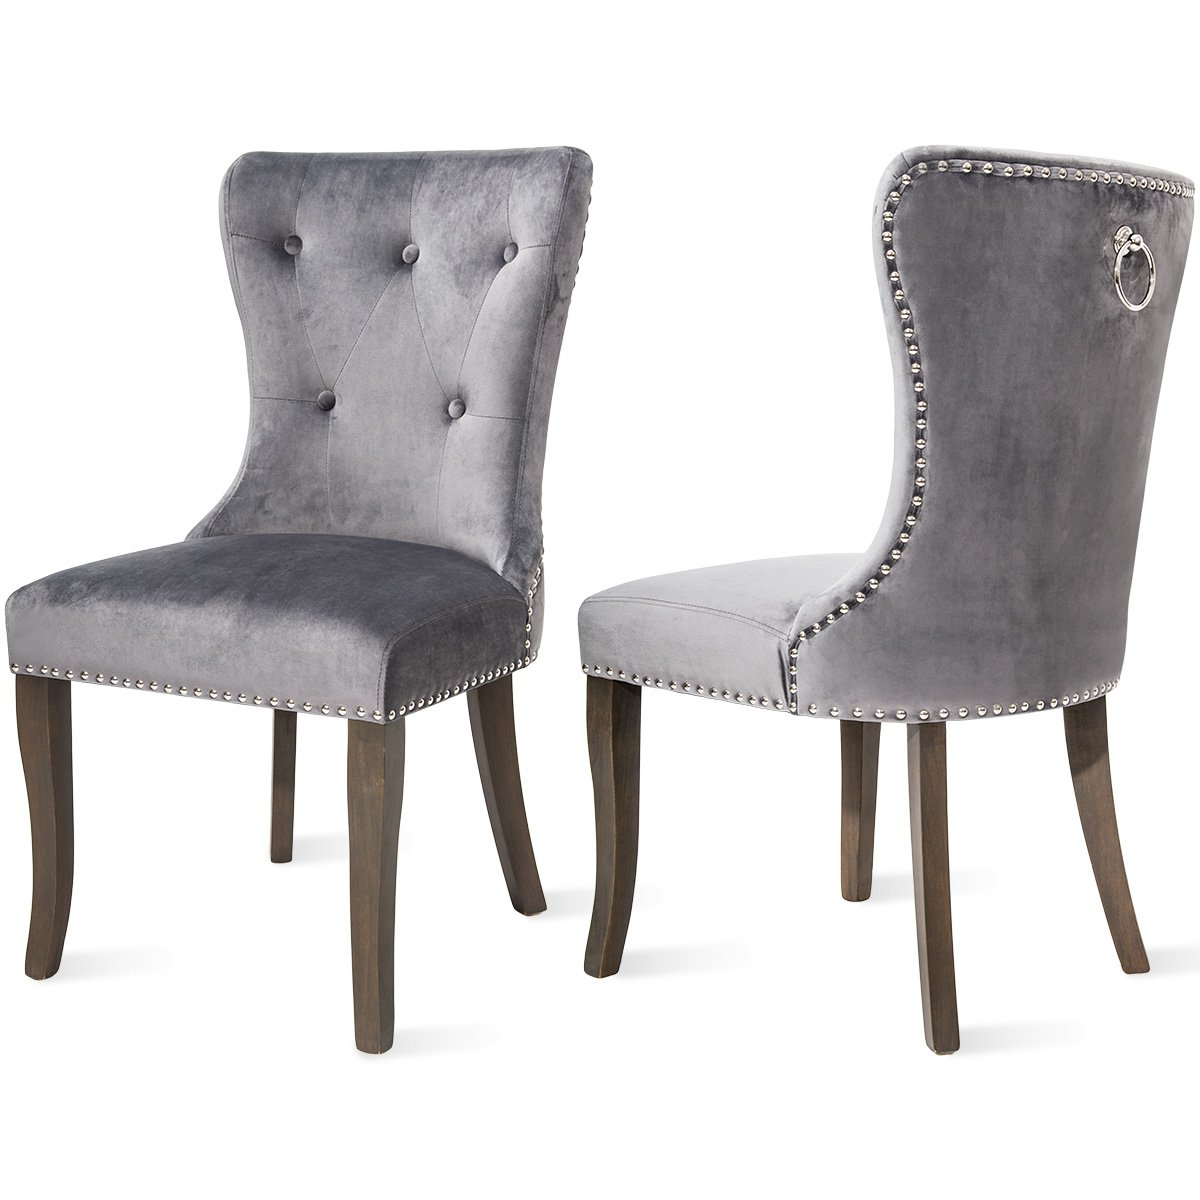 Harper Bright Designs Victorian Dining Chair Upholstered Accent Chair Velvet Grey